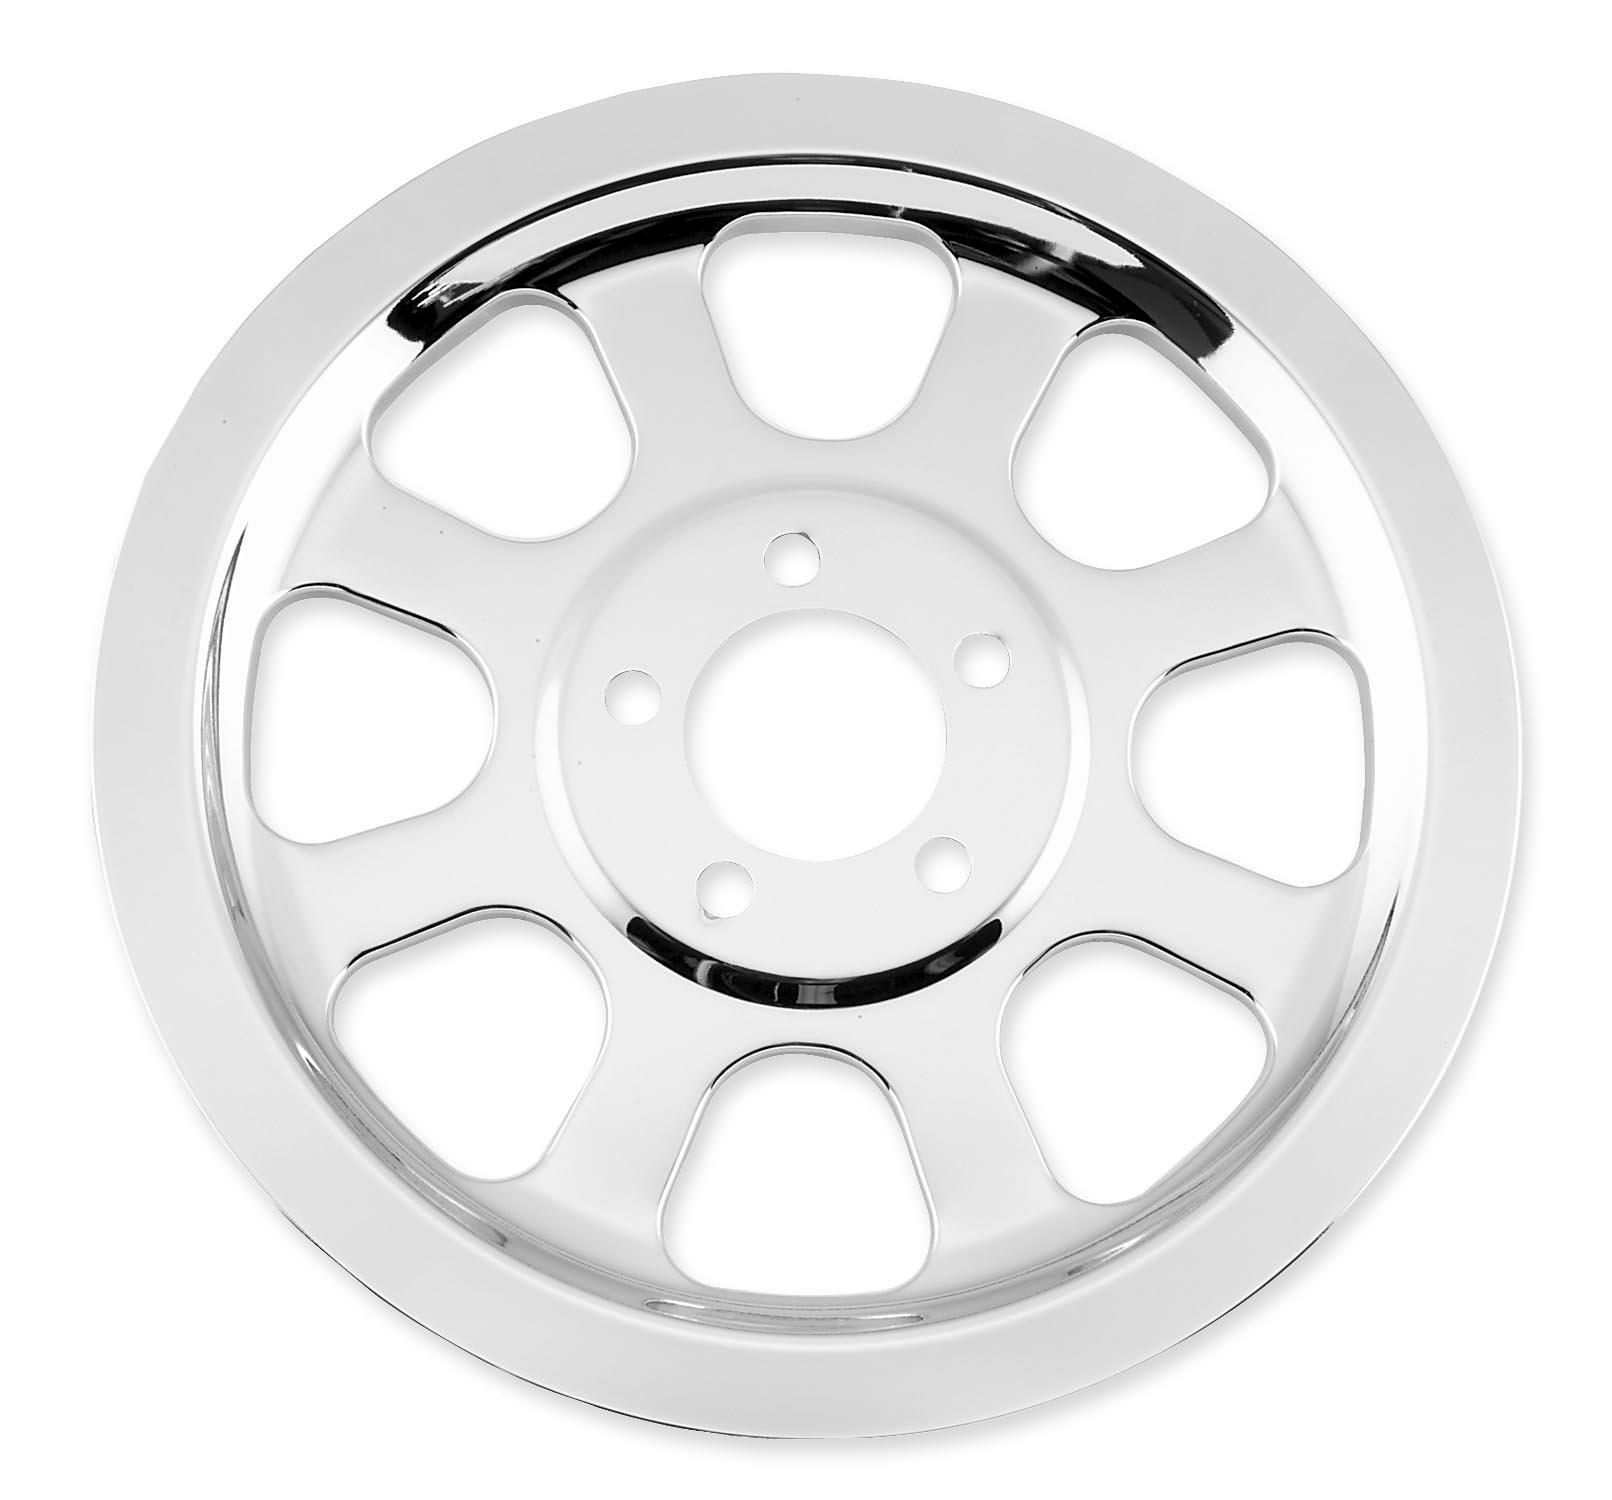 Bikers Choice Belt Drive Pulley Cover for Harley Davidson 2000-06 Softail model - One Size by Biker's Choice